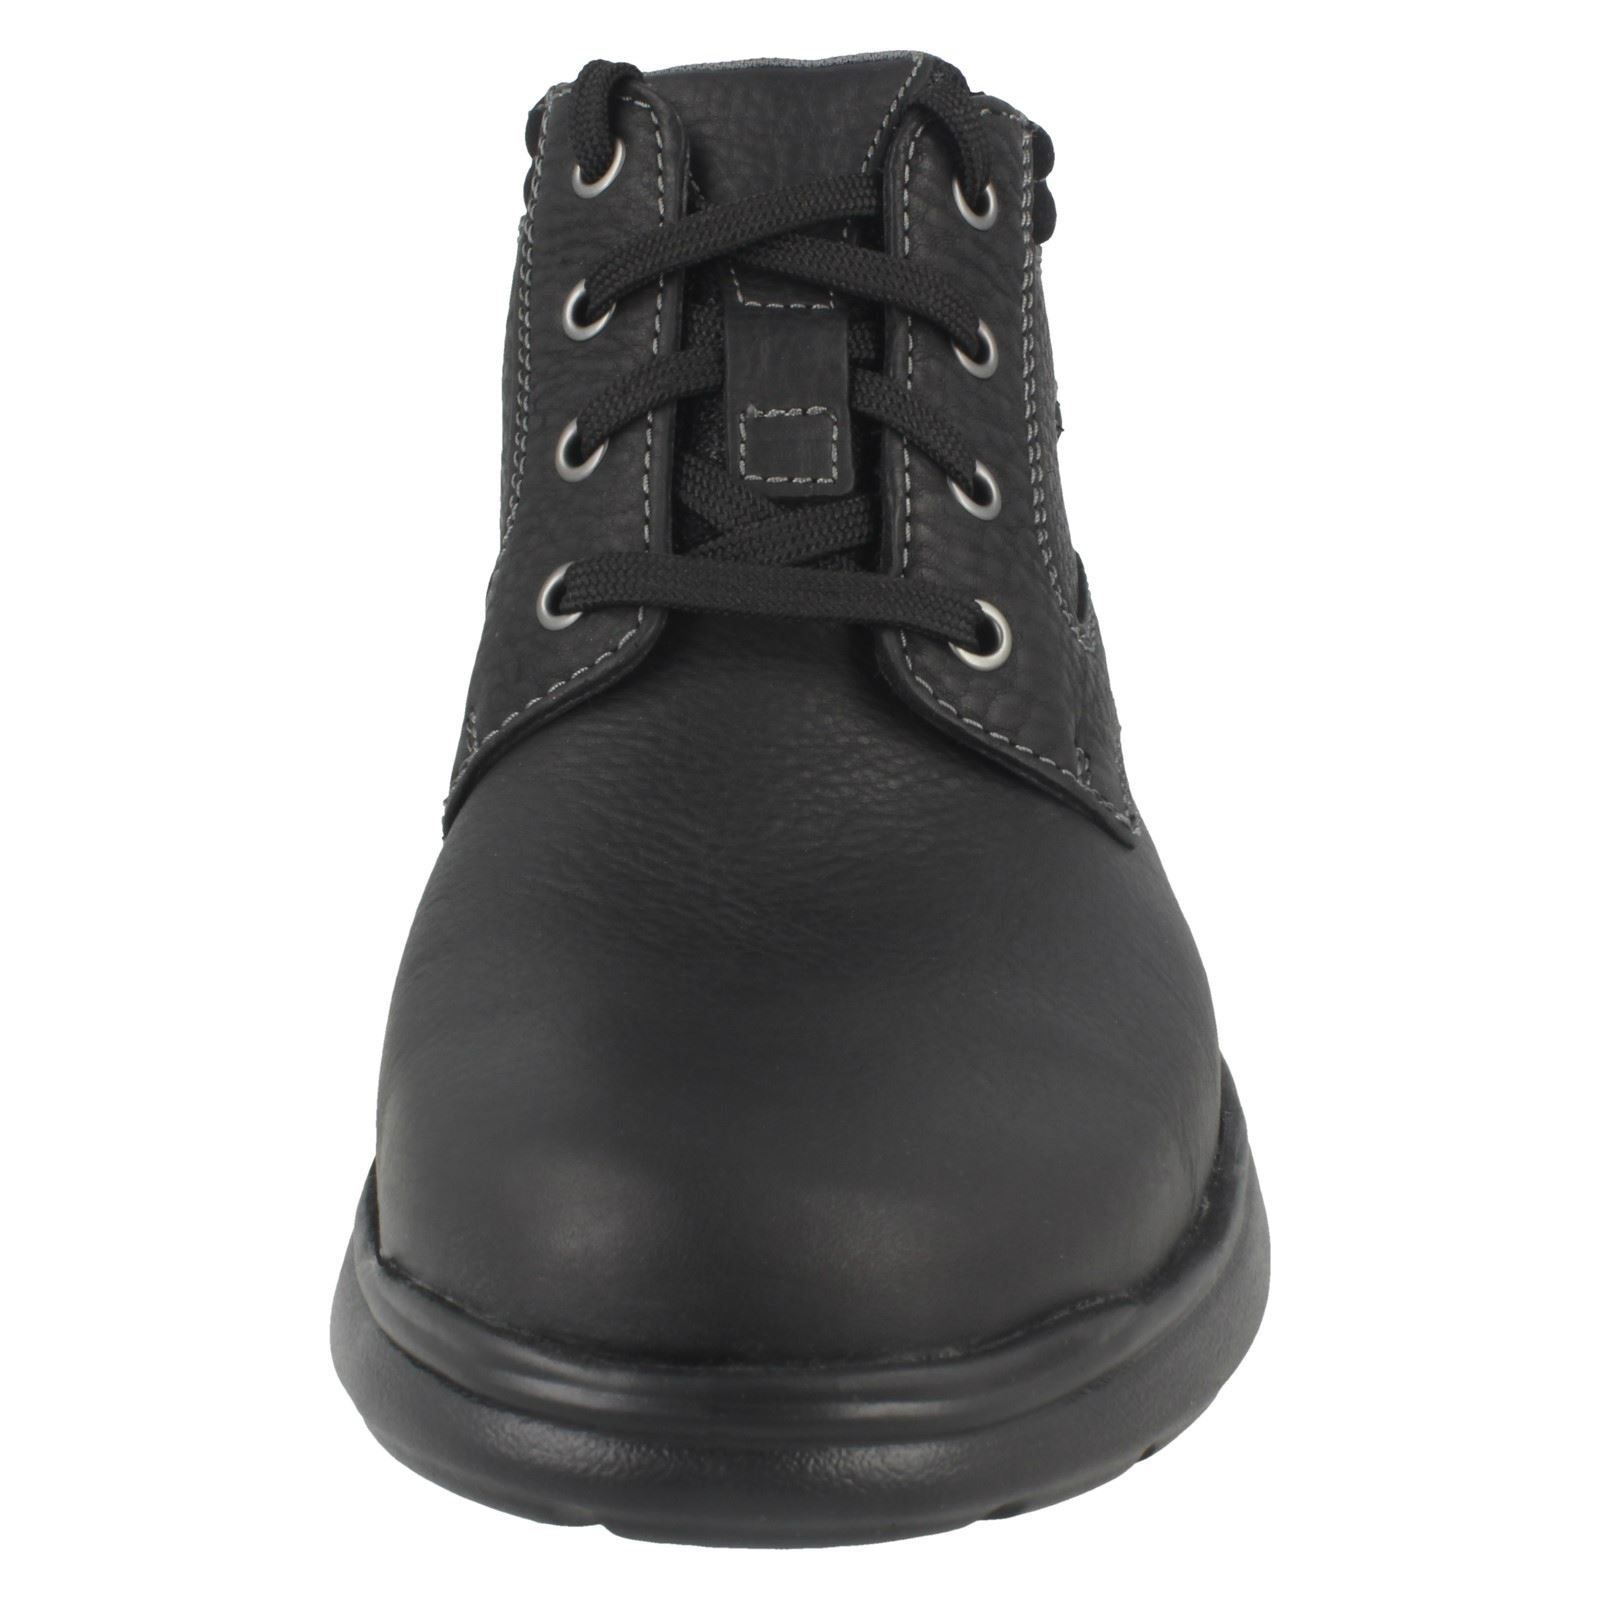 Mens-Clarks-Cotrell-Rise-Casual-Lace-Up-Ankle-Boots thumbnail 9